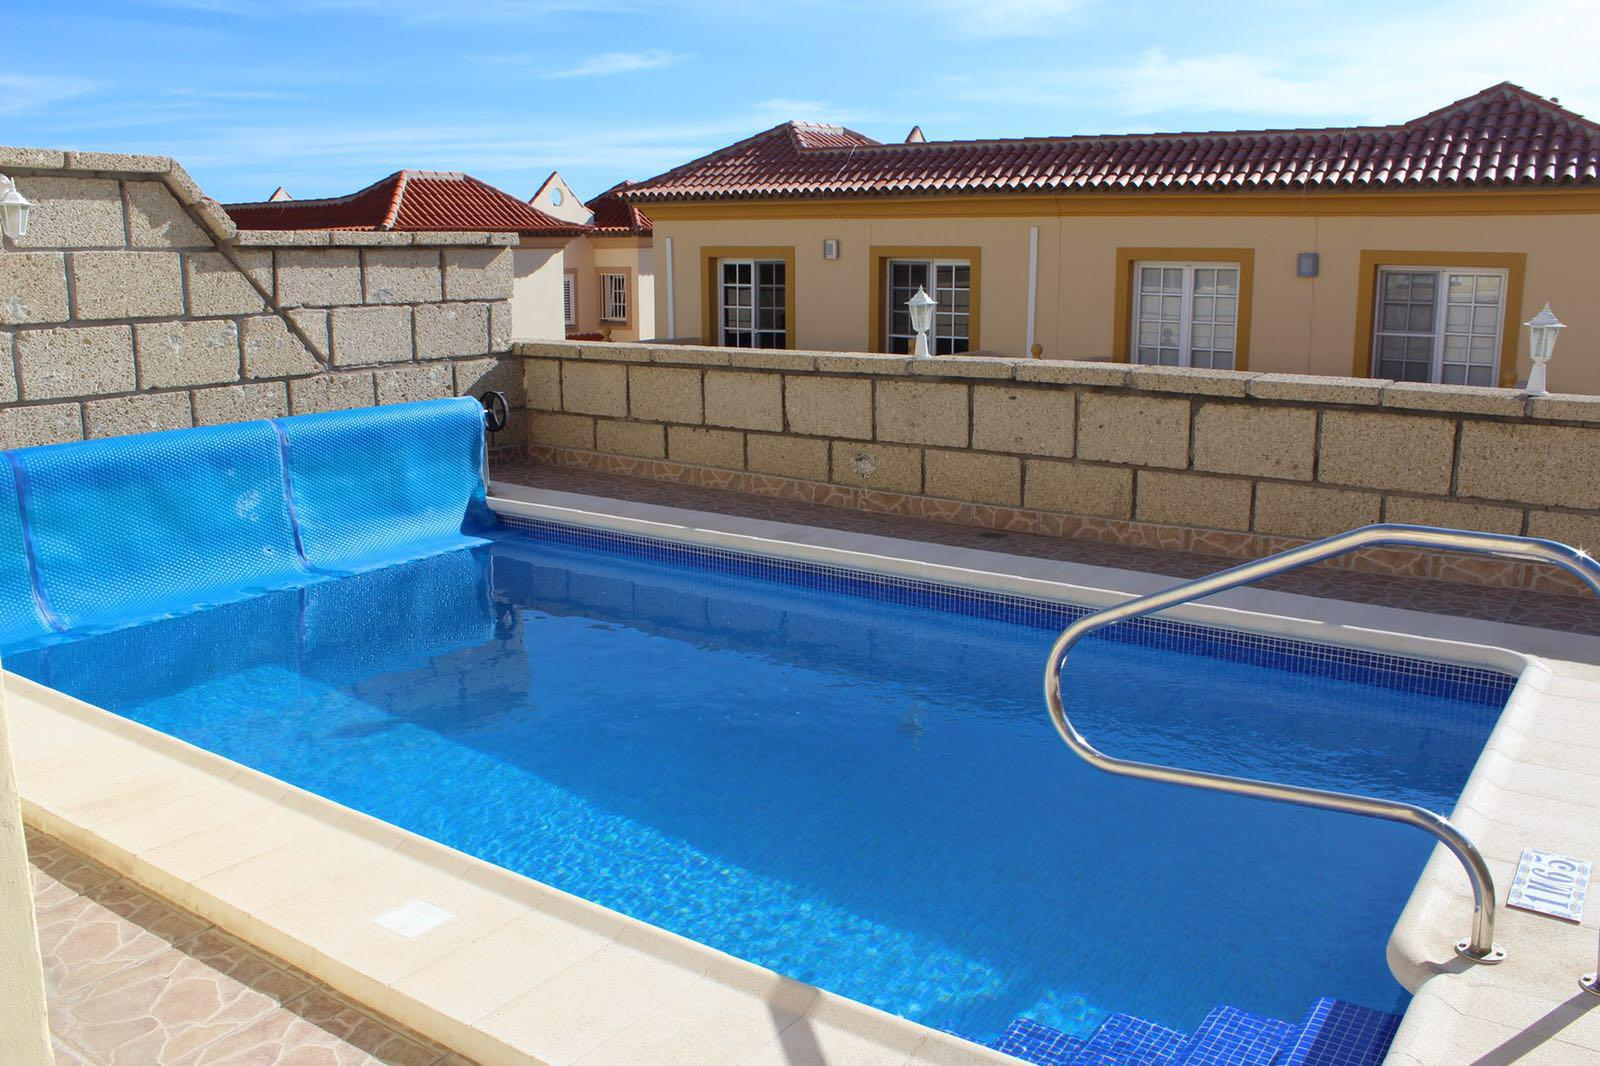 Properties for Sale in Tenerife, Canary Islands, Spain | SylkWayStar Real Estate. Townhouse 5 bedrooms Madroñal. Image-25137